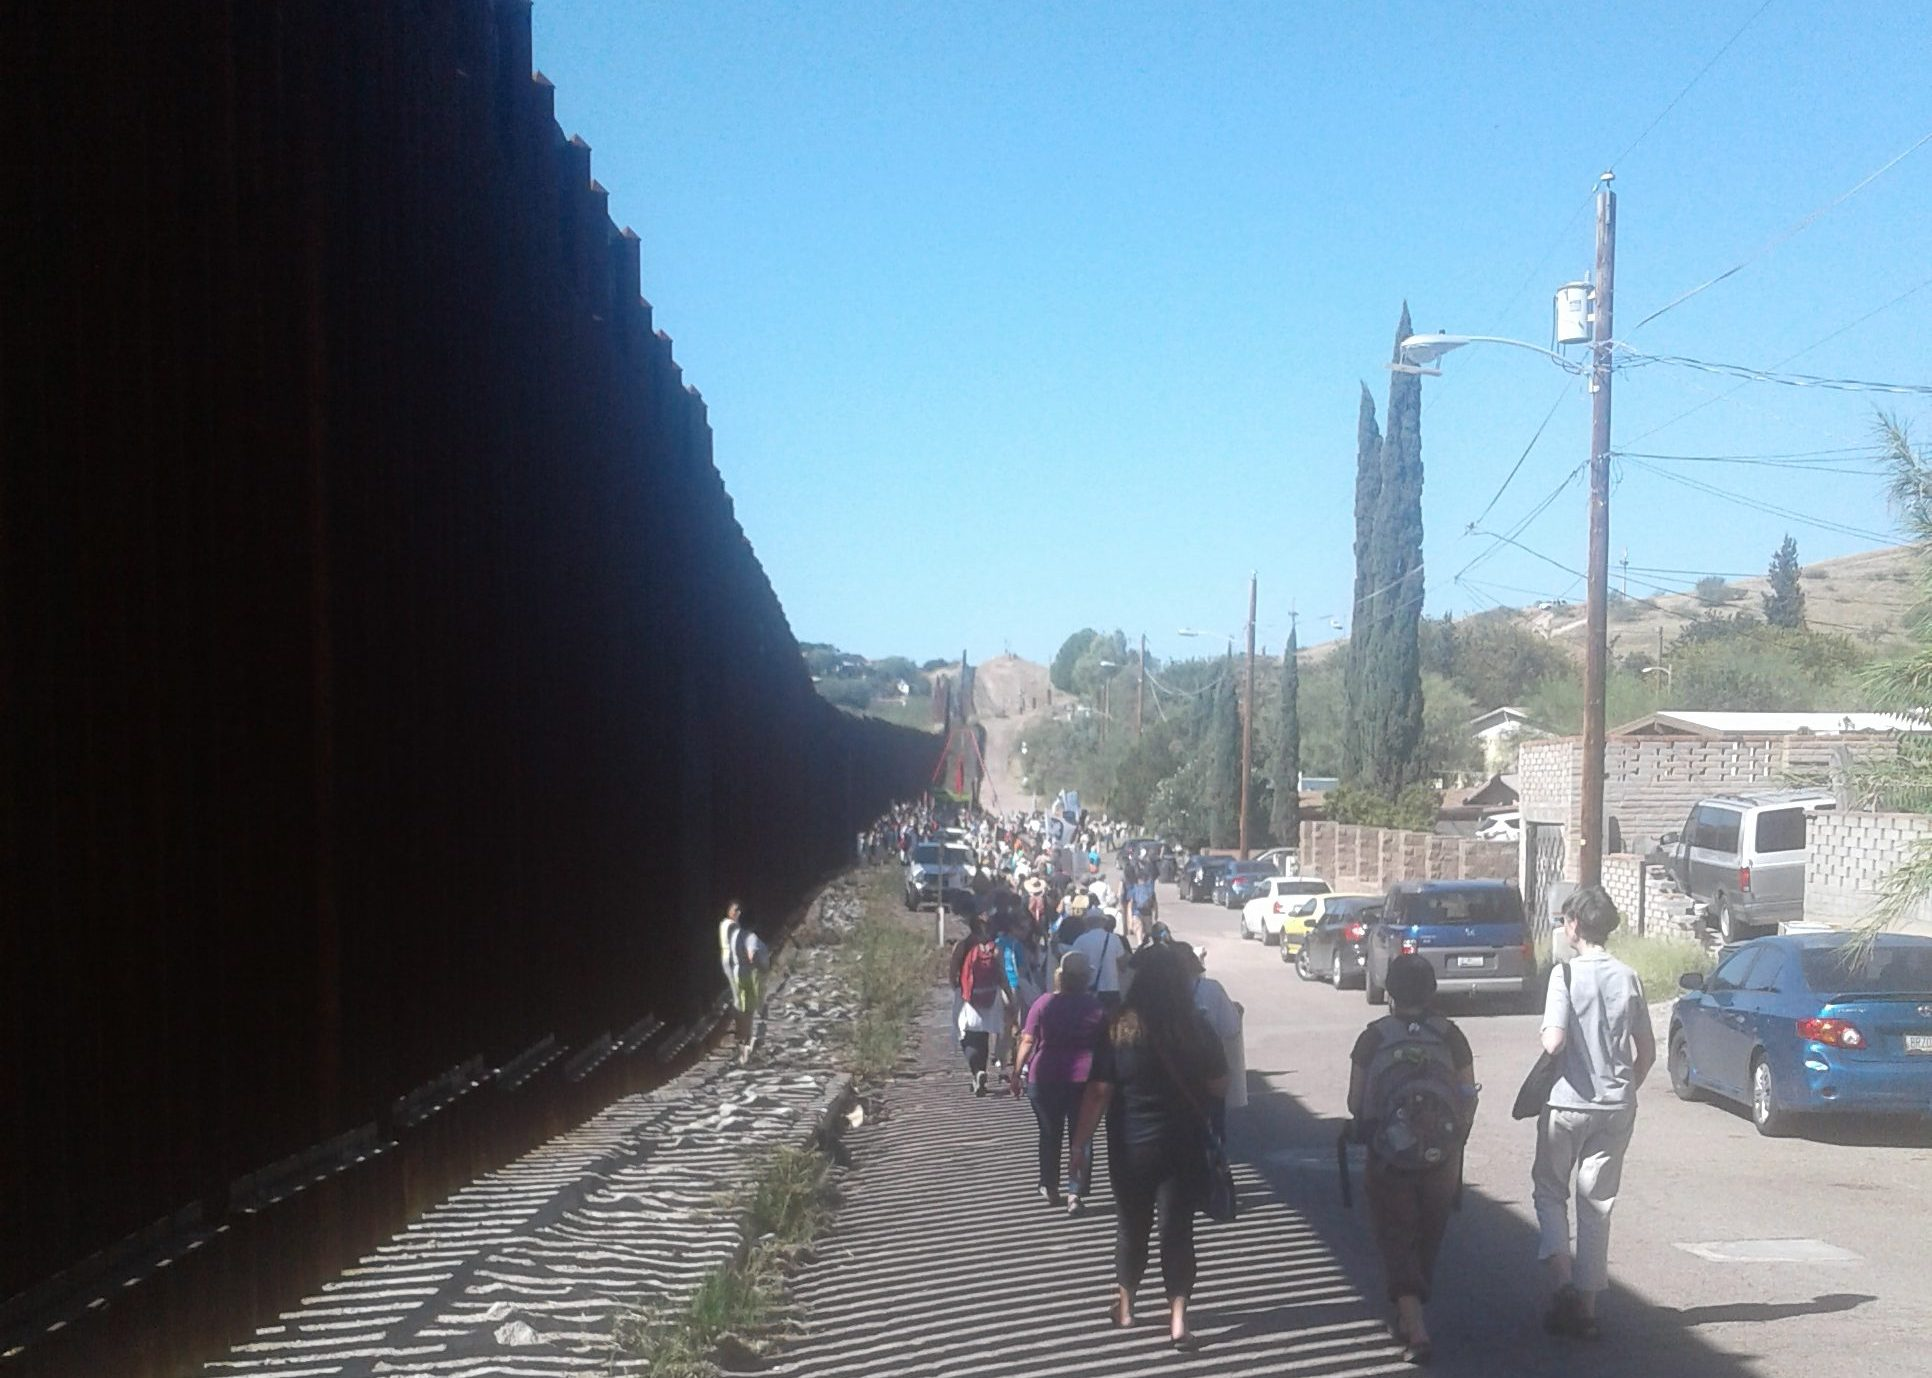 border fence stretches into the distance on the left, as SOAW border convergence attendees march alongside it